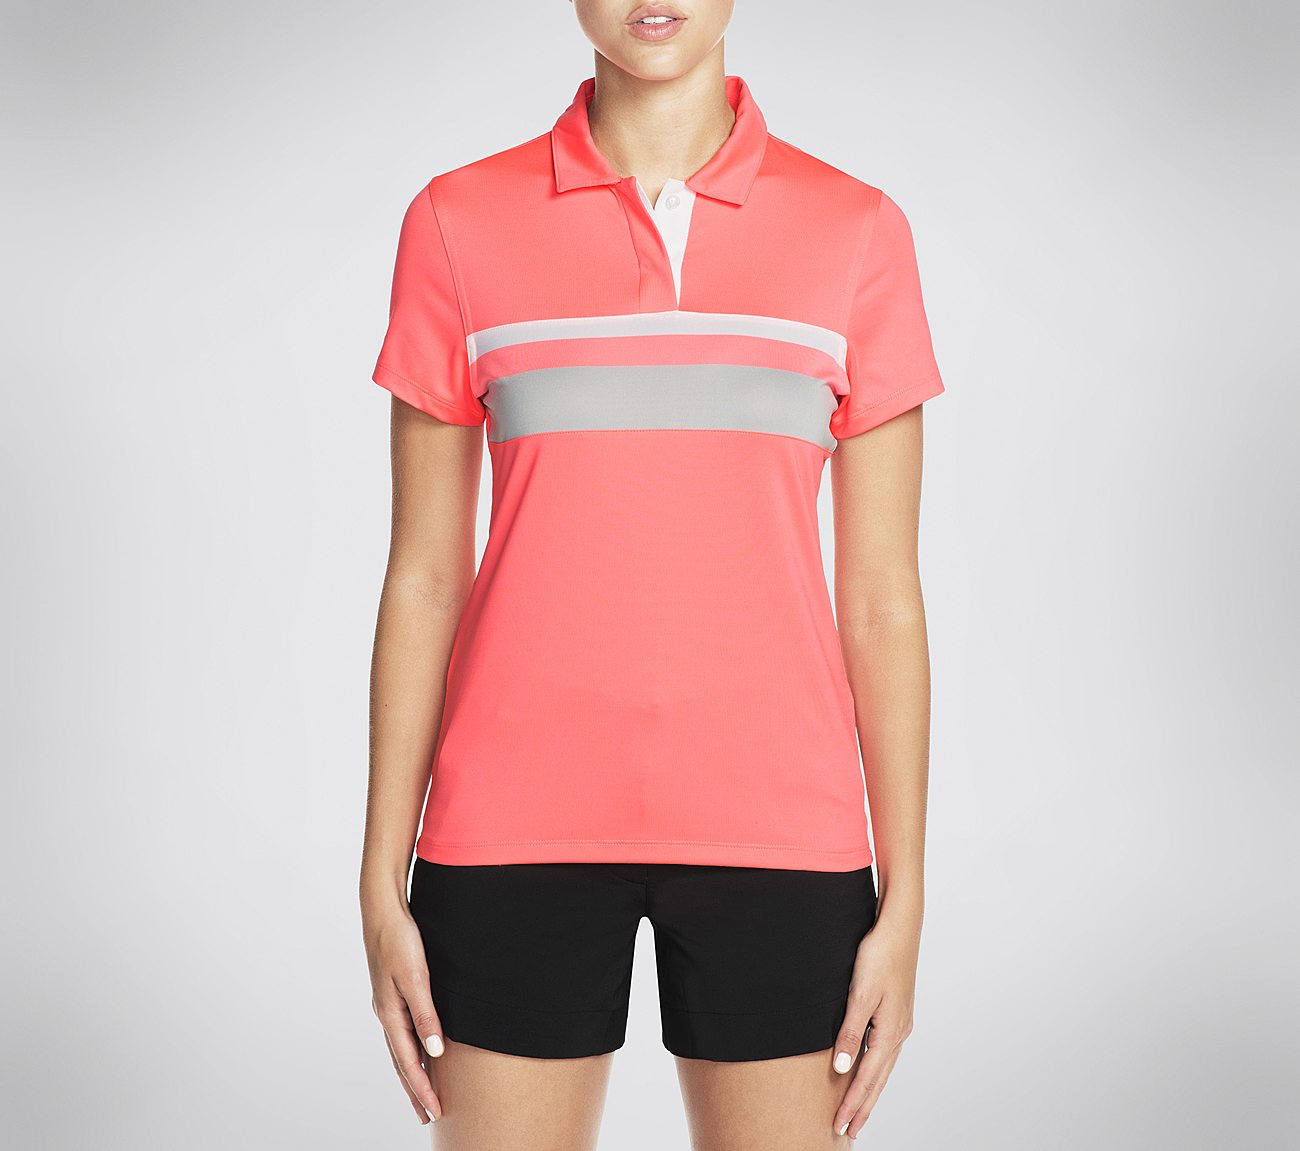 Skechers GOGOLF Ace Polo Shirt